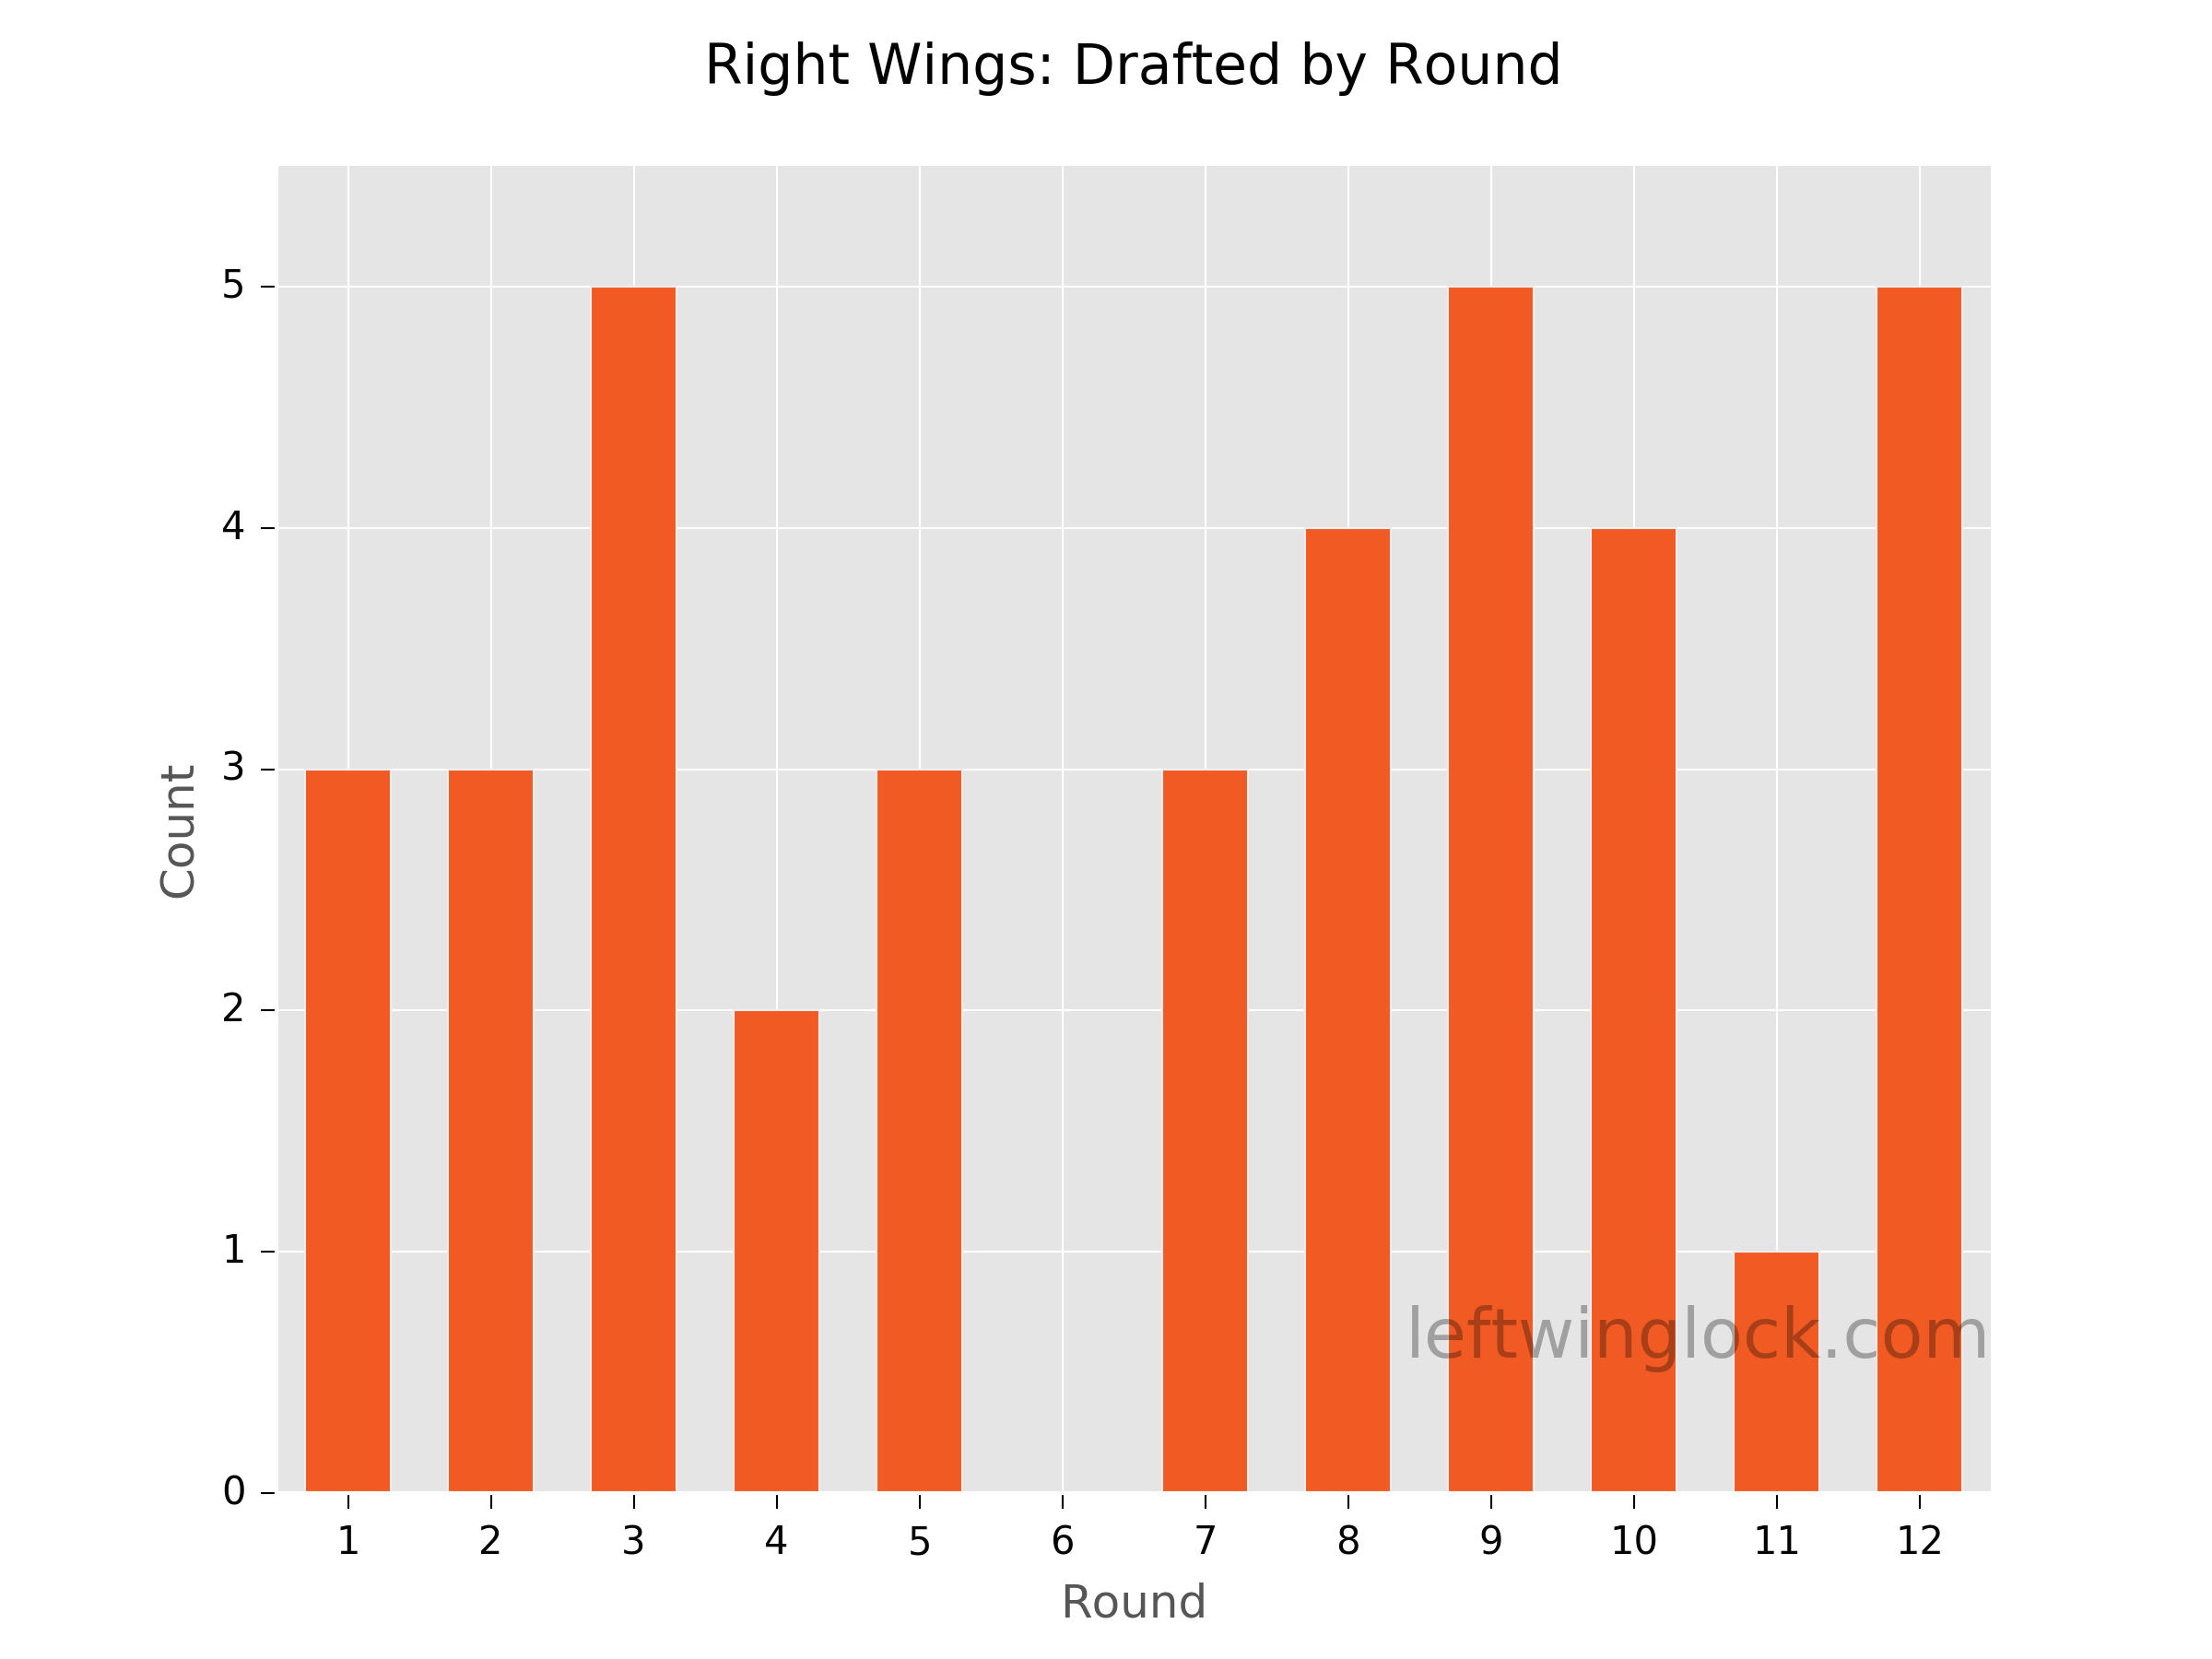 Finding Value at Right Wing Position